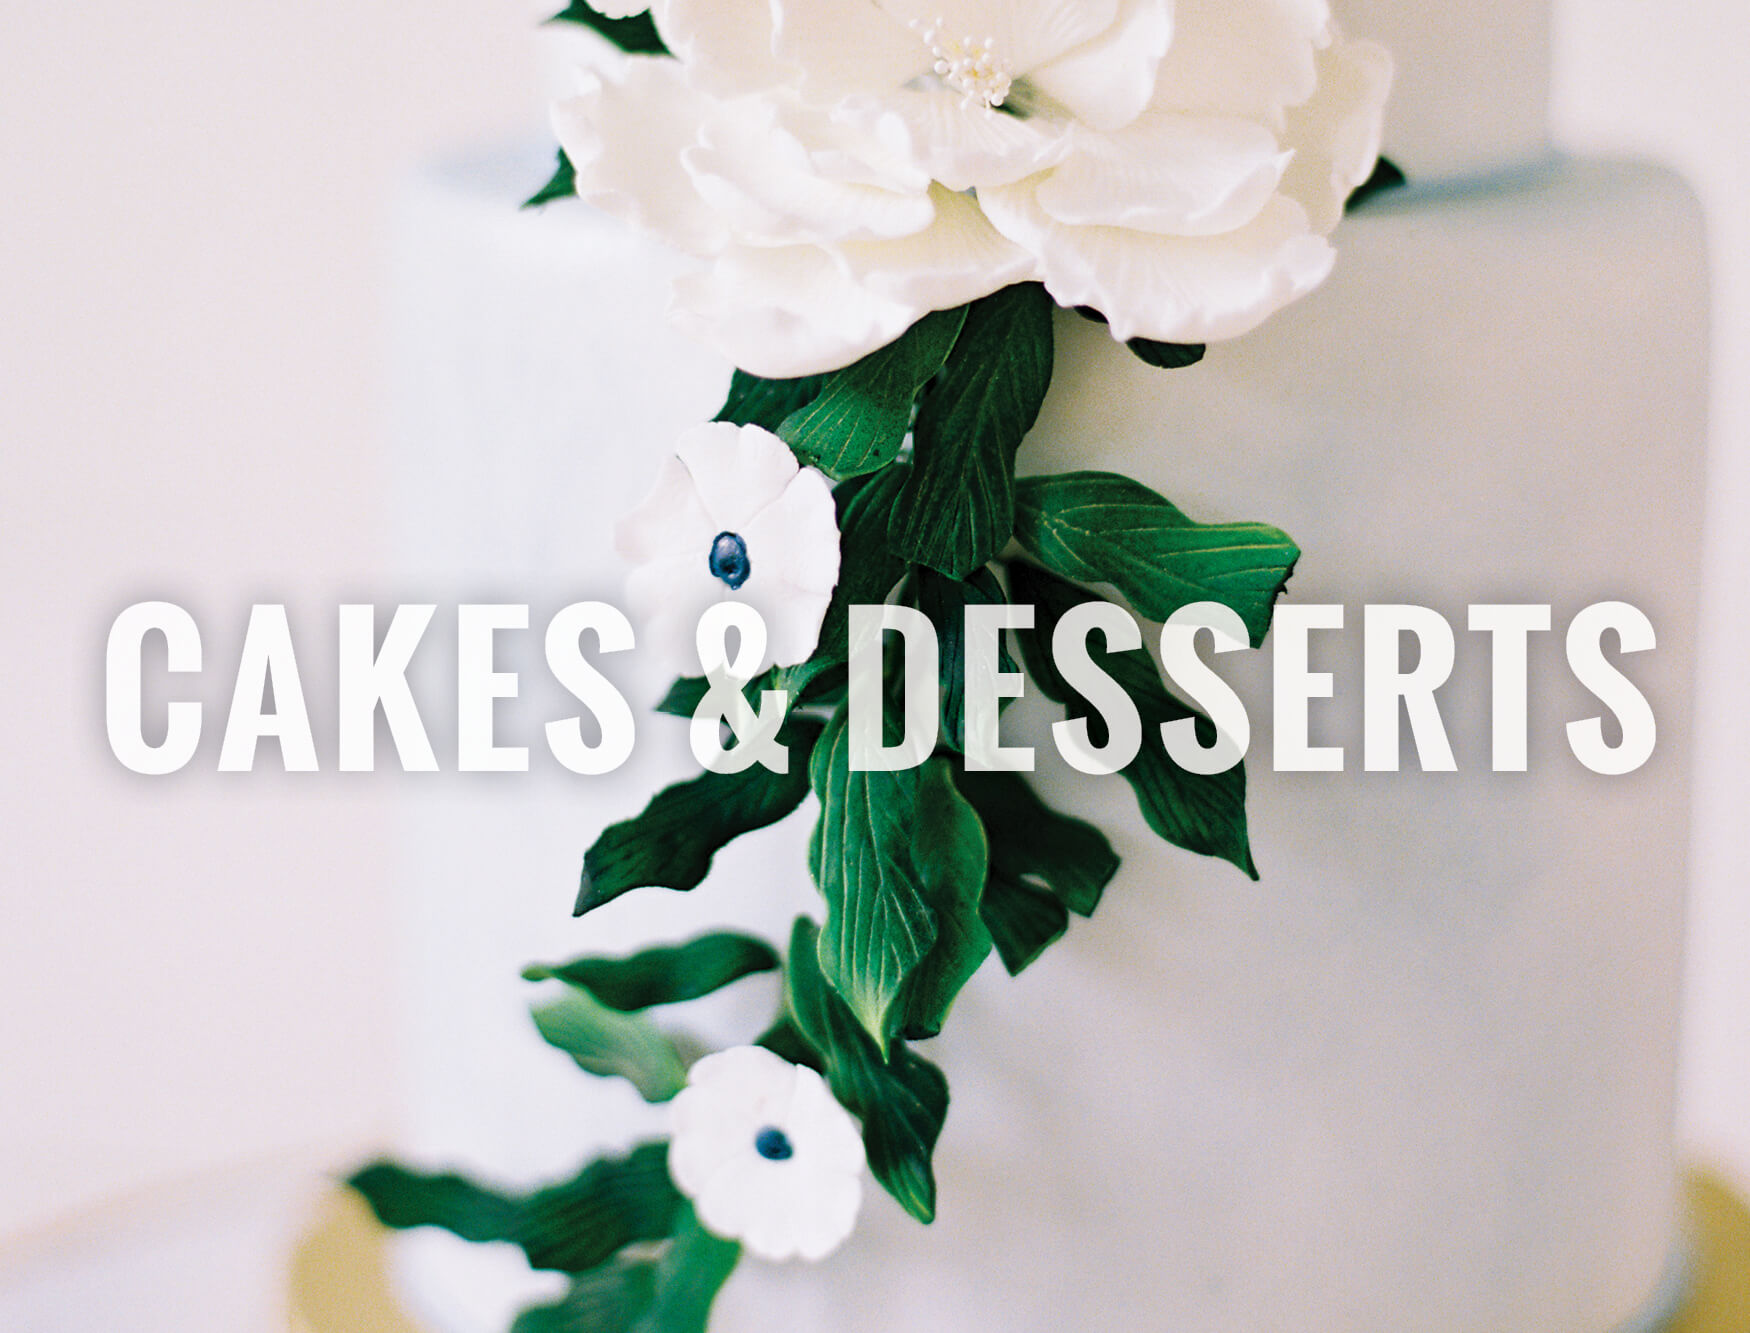 North Texas Wedding Cakes & Desserts